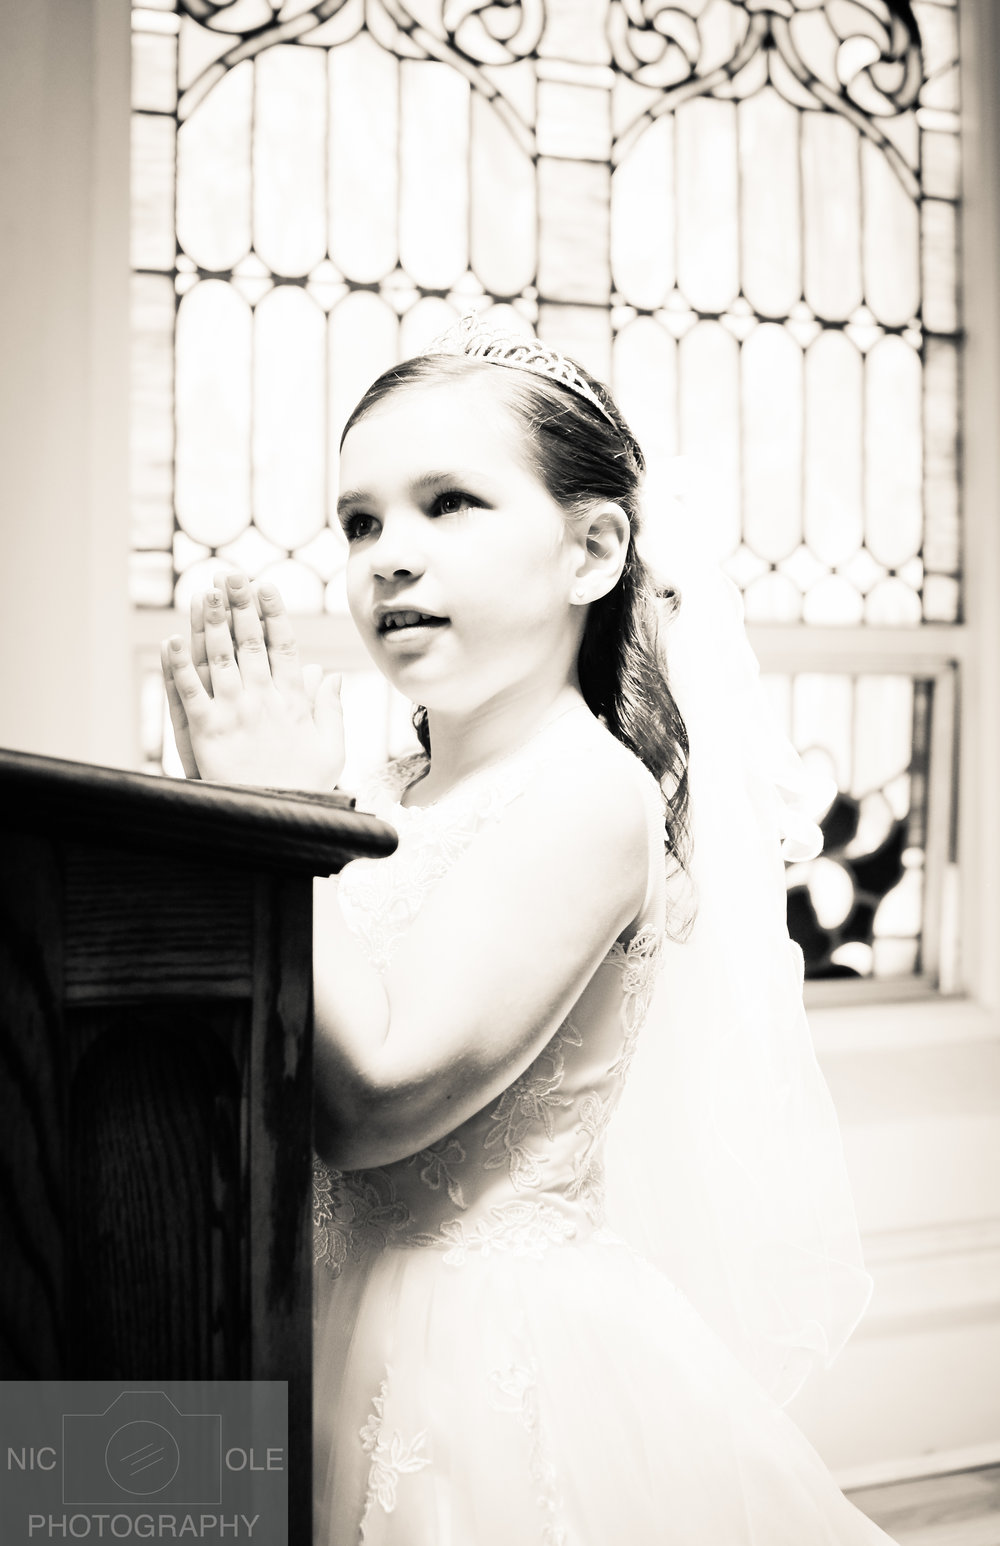 Ava's Communion 2017-NIC-OLE Photography-6.jpg